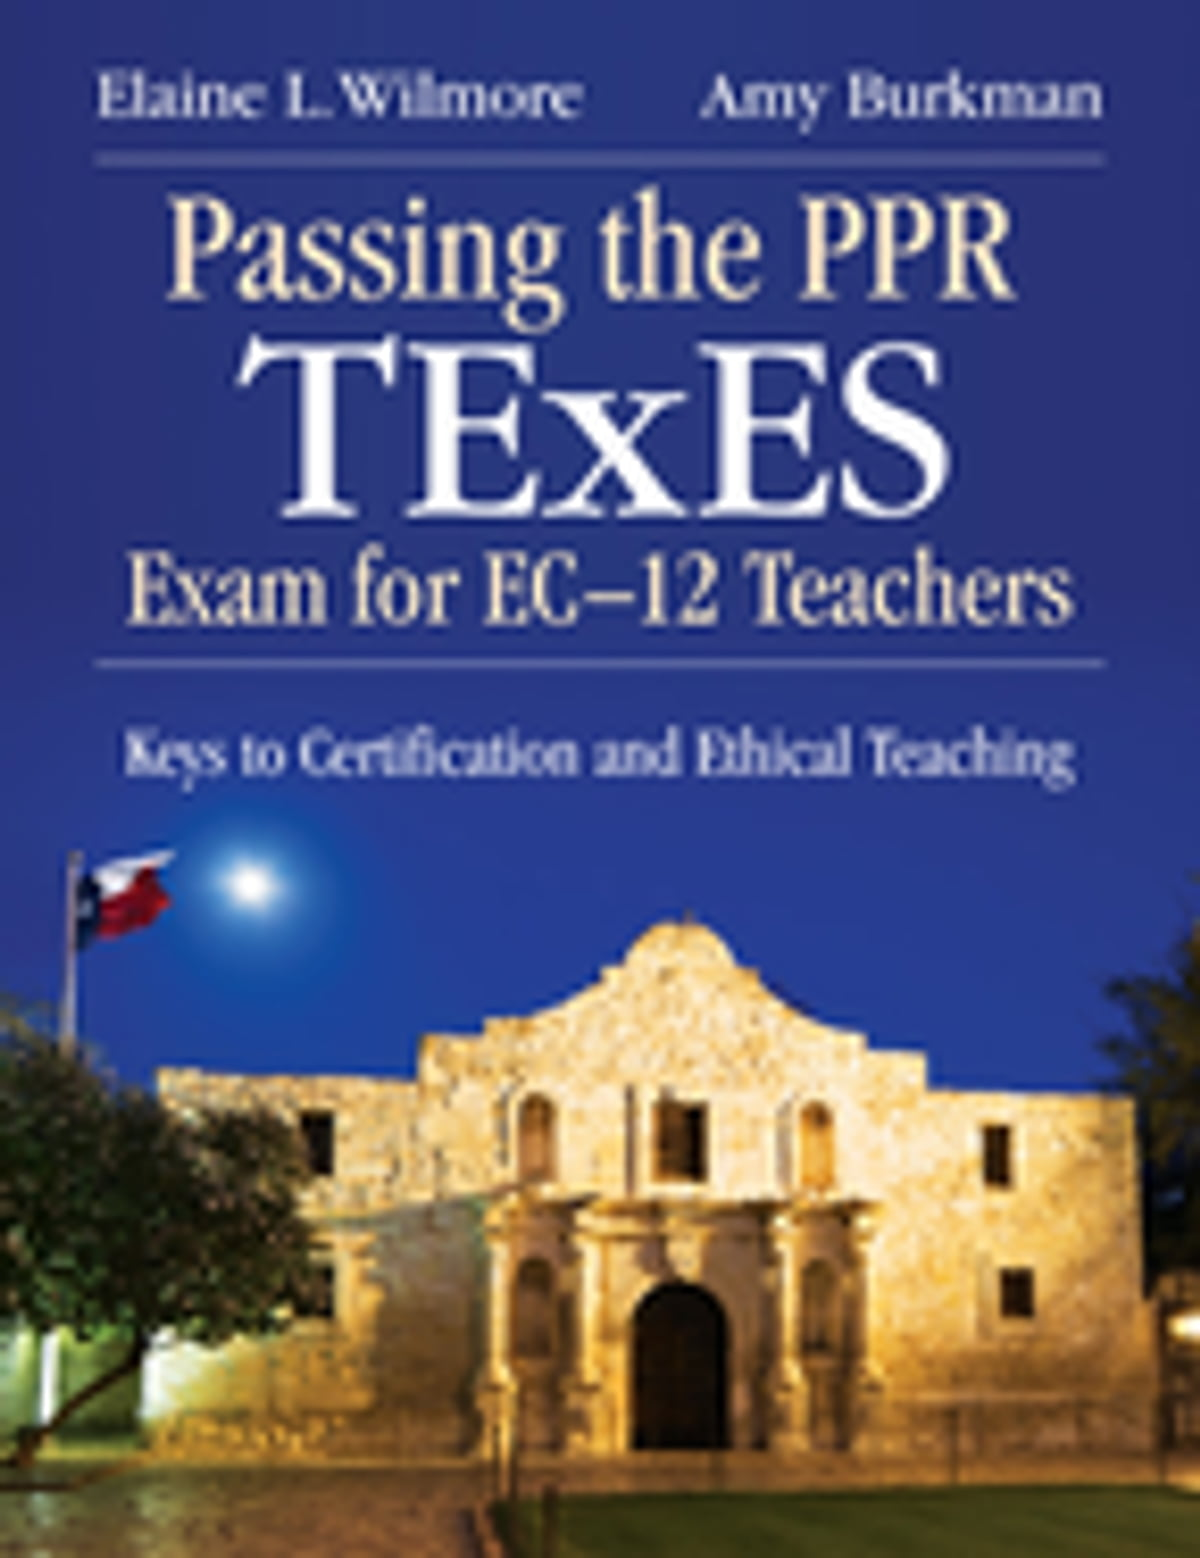 Passing the texes certification exam - Passing The Ppr Texes Exam For Ec 12 Teachers Ebook By Elaine L Wilmore 9781452238029 Rakuten Kobo